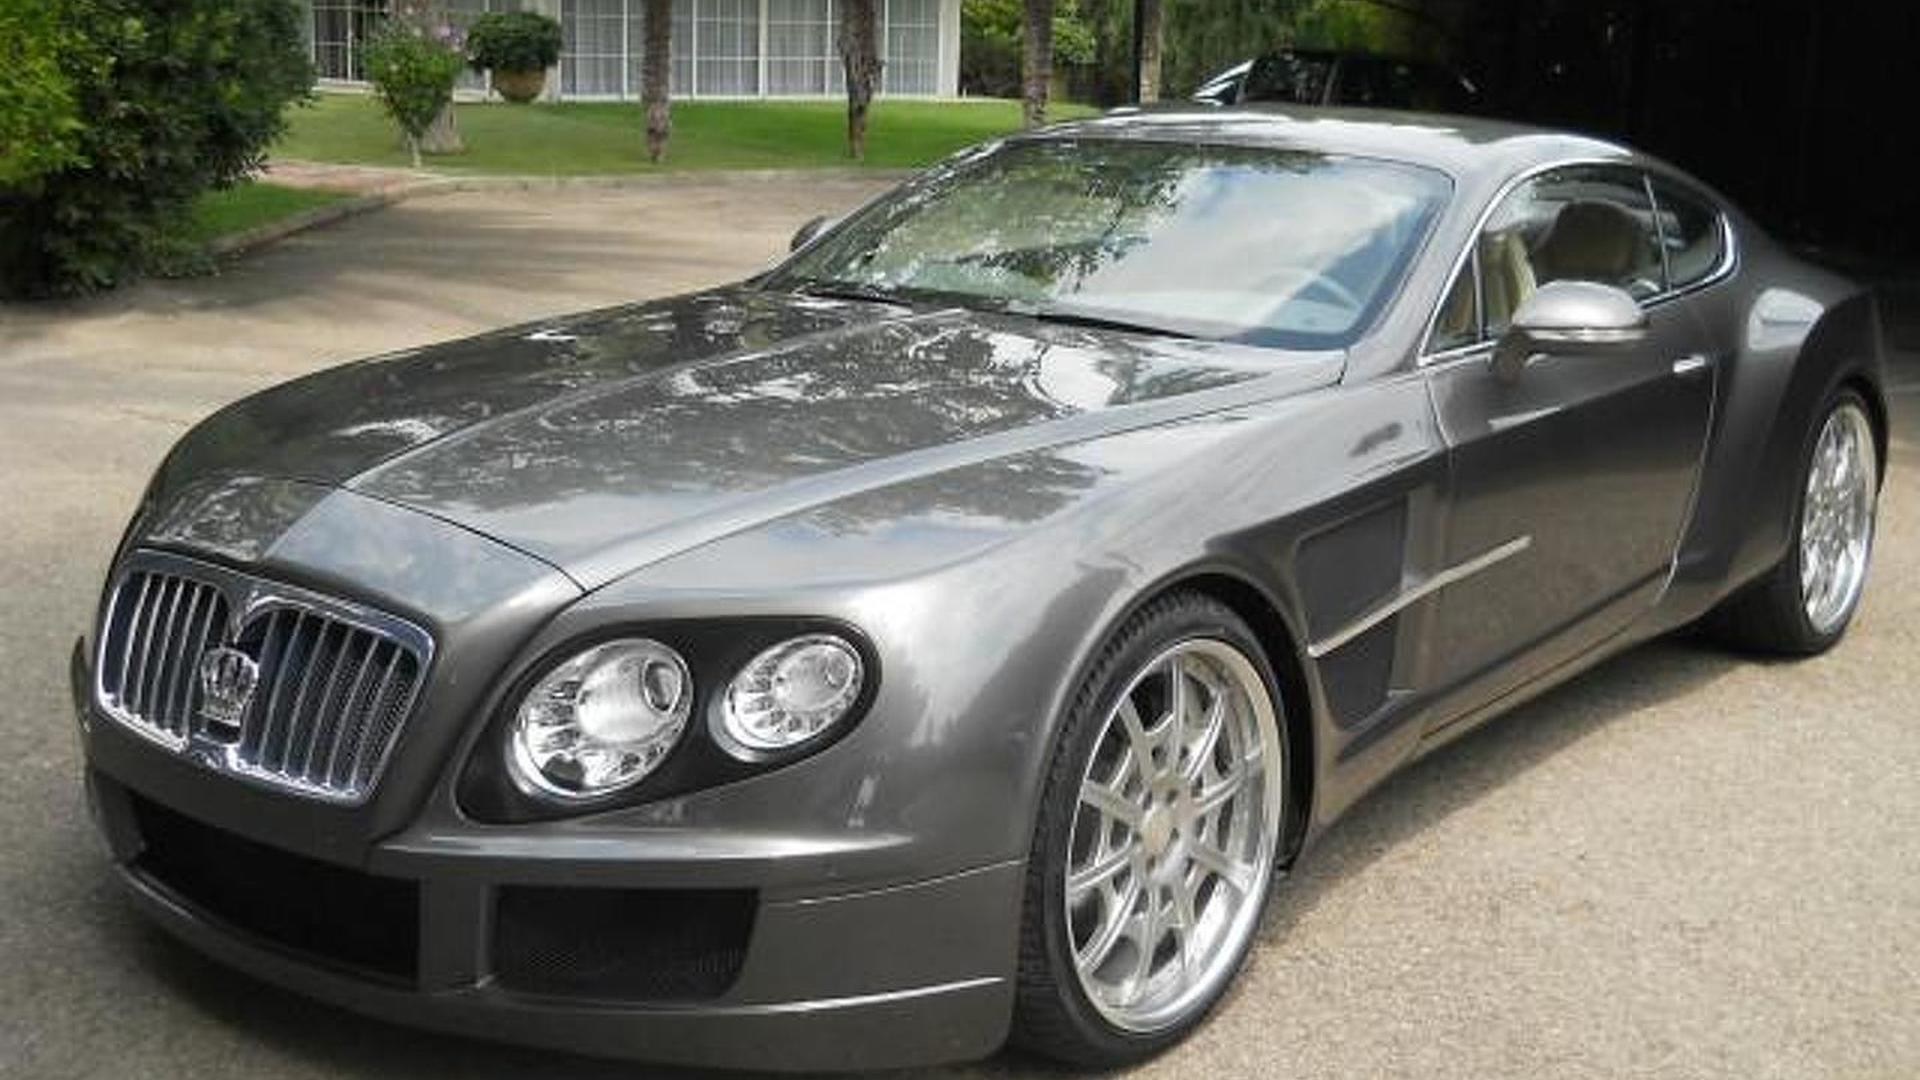 Bentley Continental Gt Allegedly Based On Rolls Royce Phantom Costs 300 000 Eur